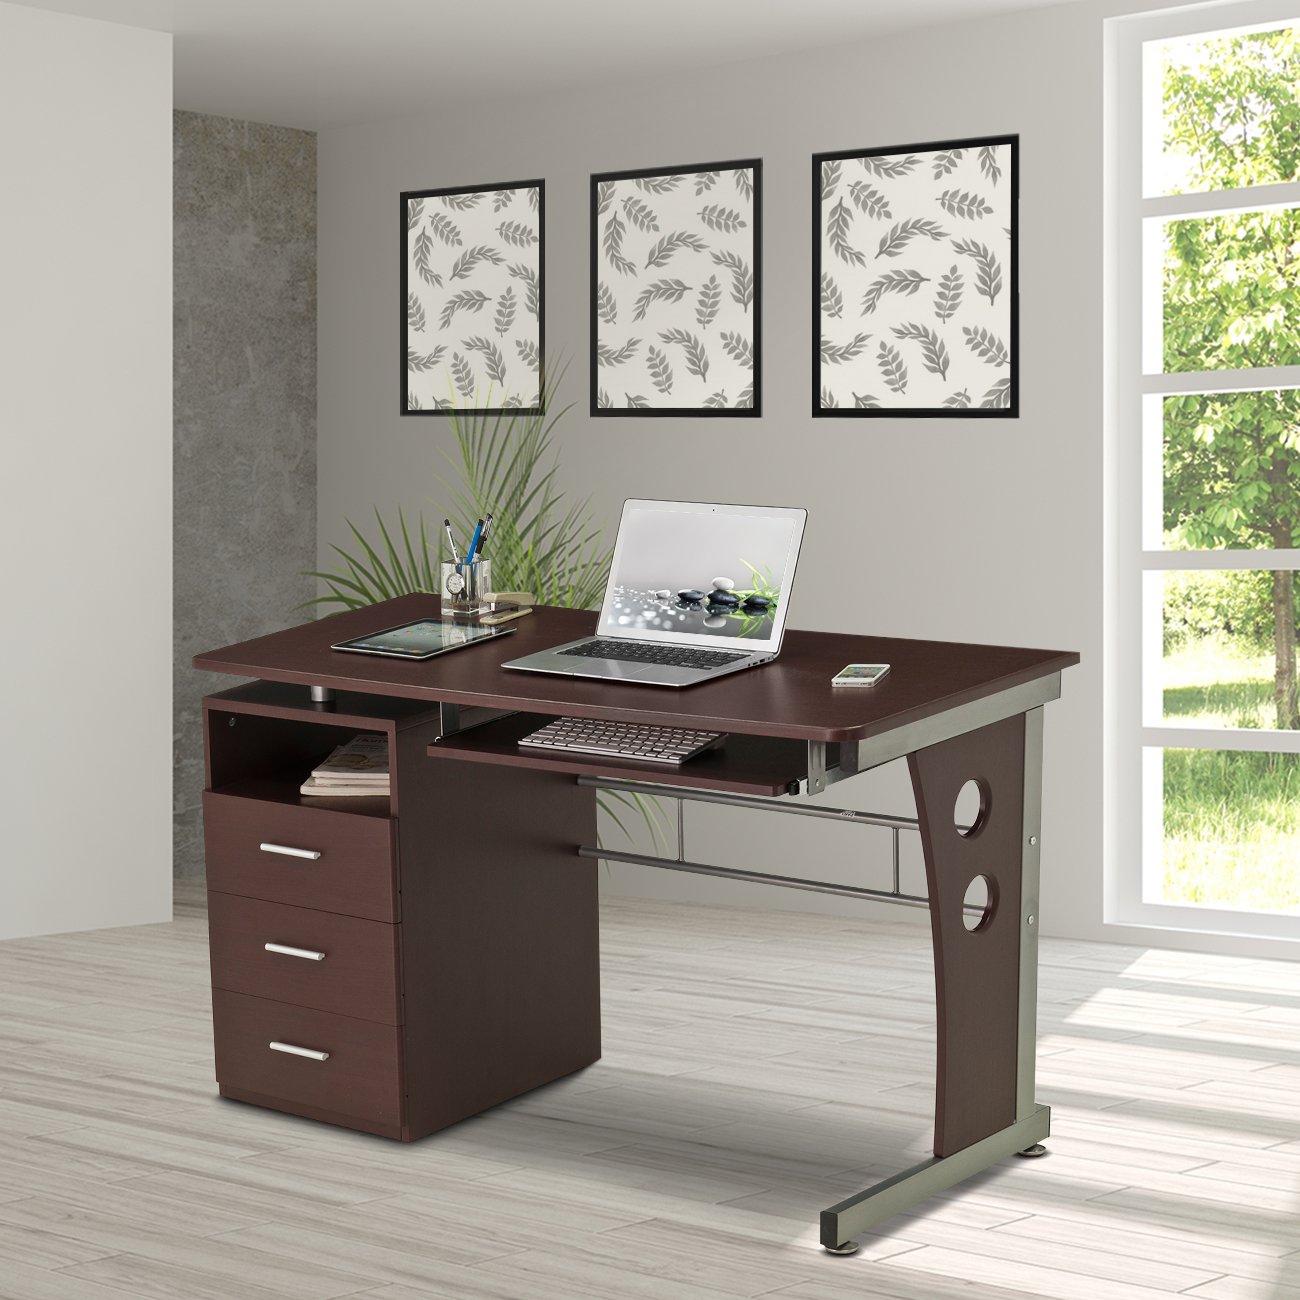 Techni Mobili Computer Desk with Keyboard Tray and Drawers, Chocolate (RTA-3520-CH)